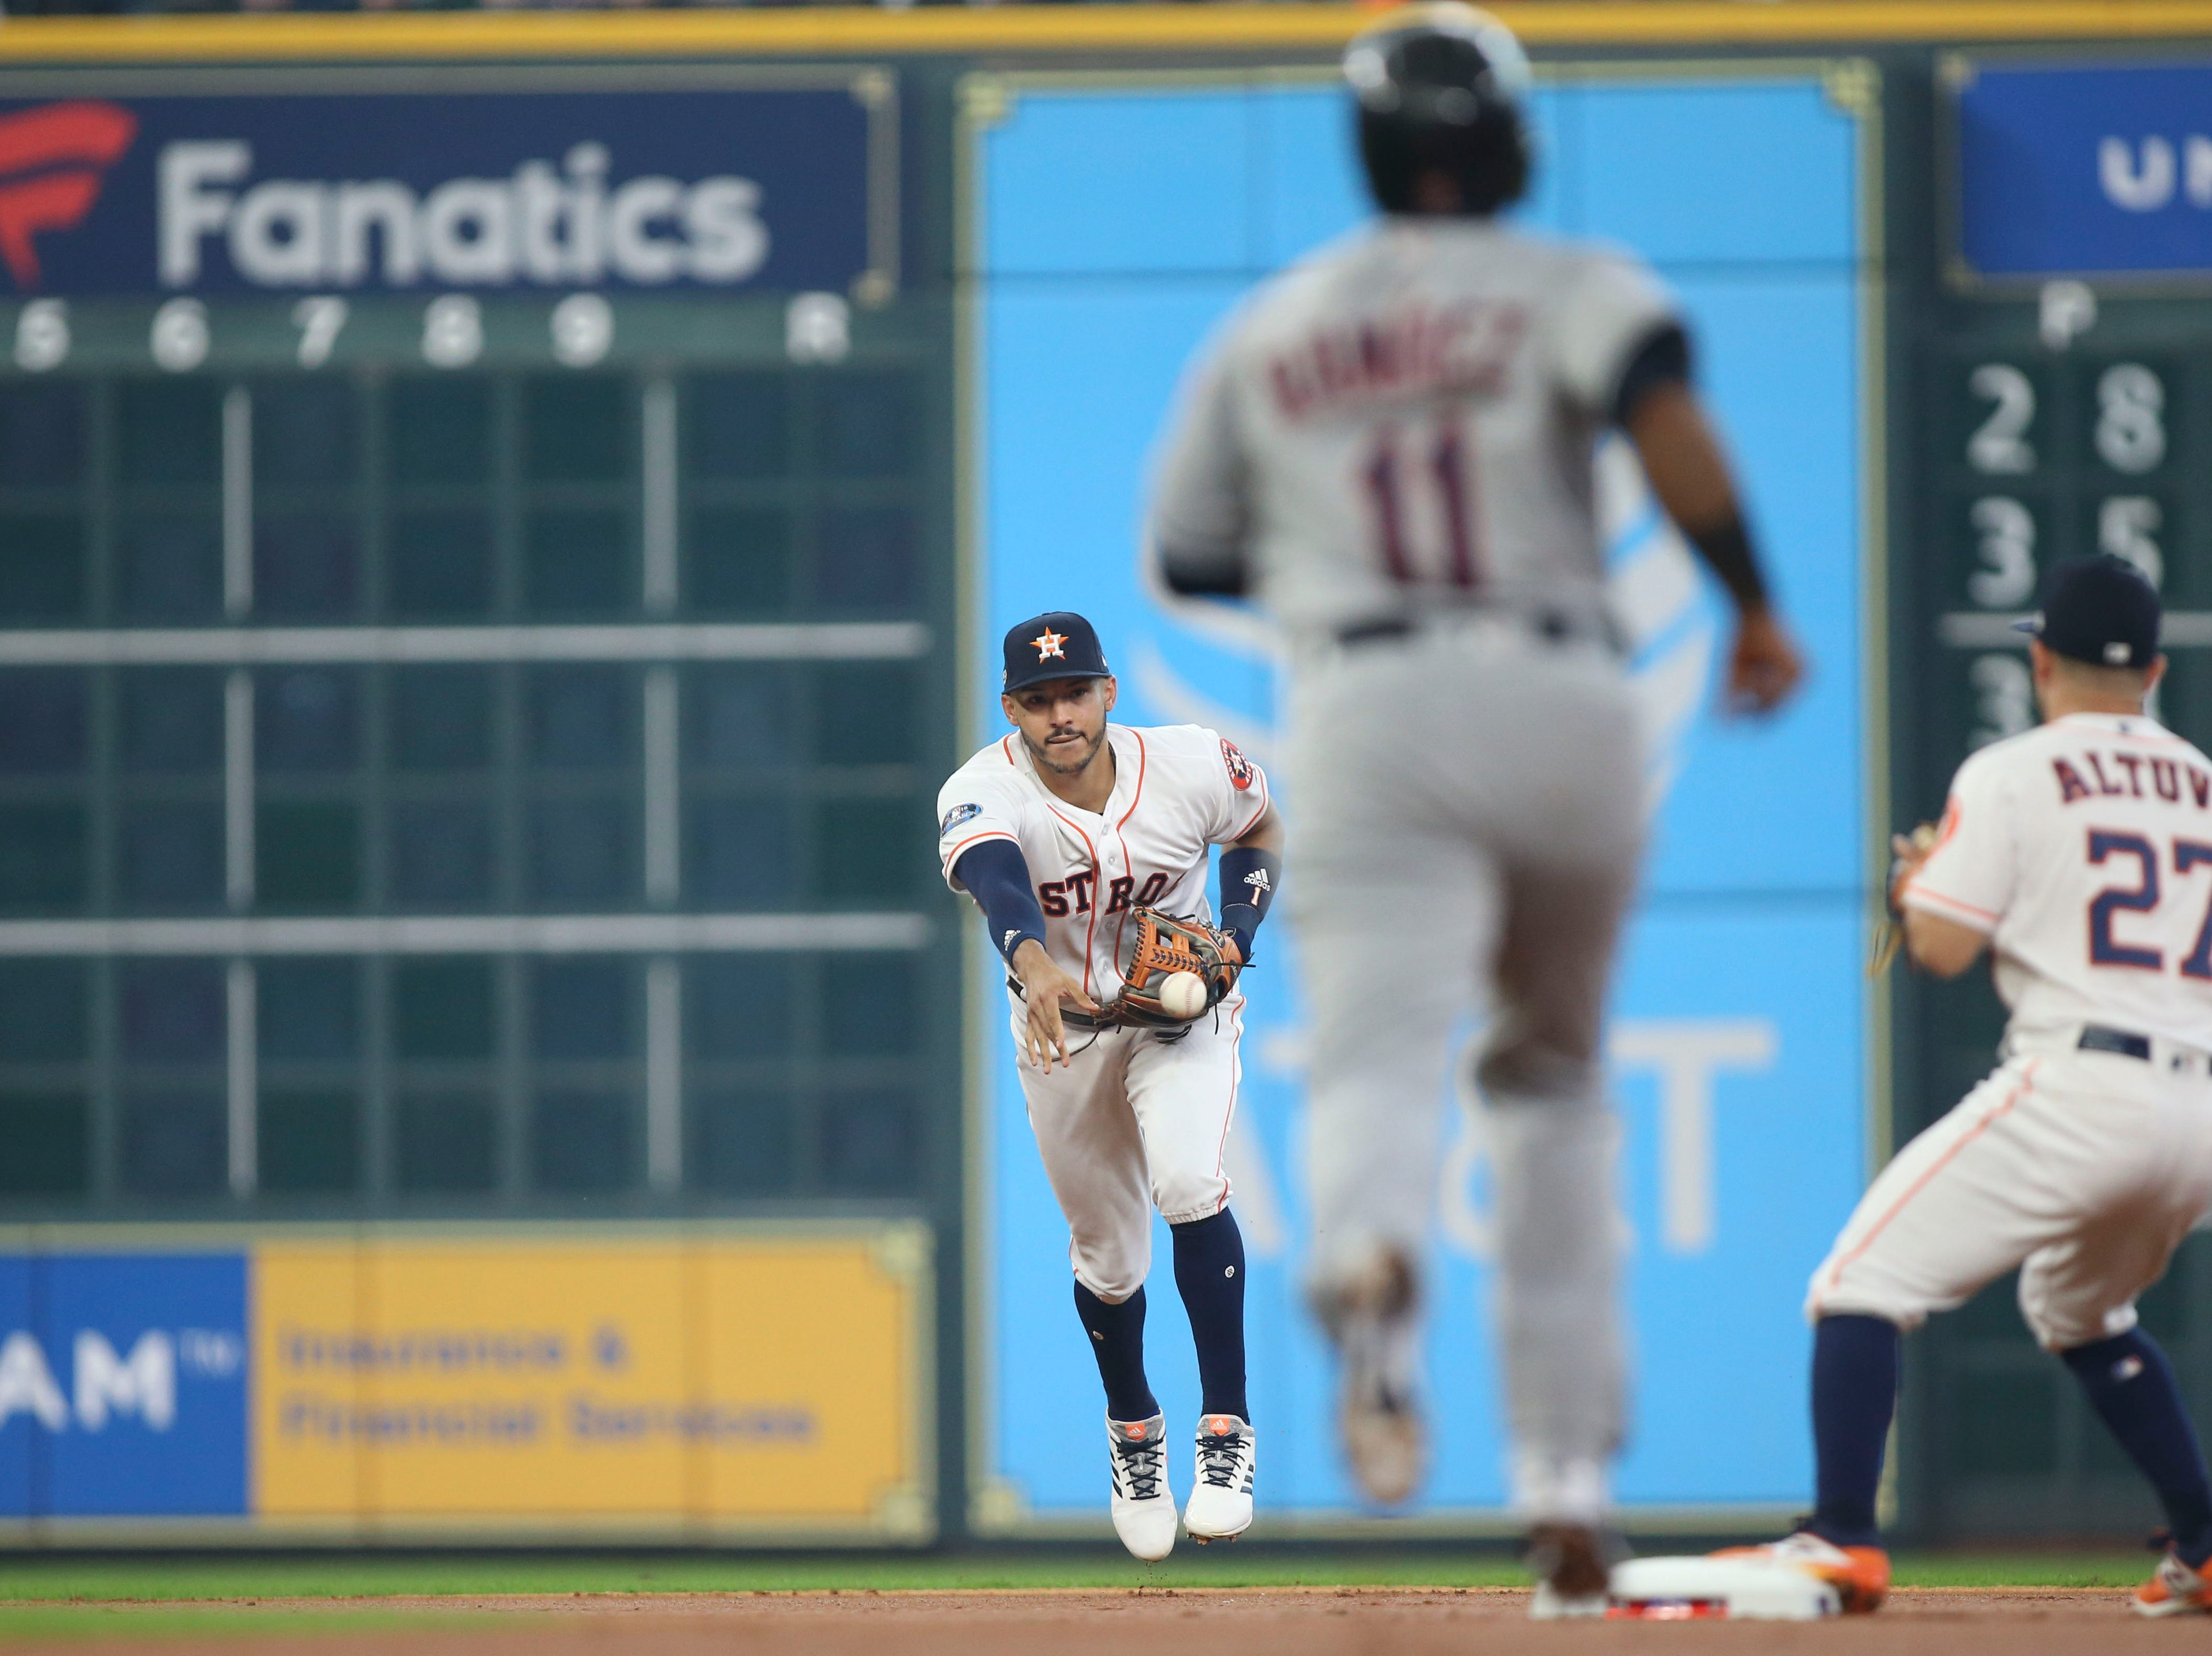 ALDS Game 1: Astros shortstop Carlos Correa flips the ball to second baseman Jose Altuve for an out in the first inning.